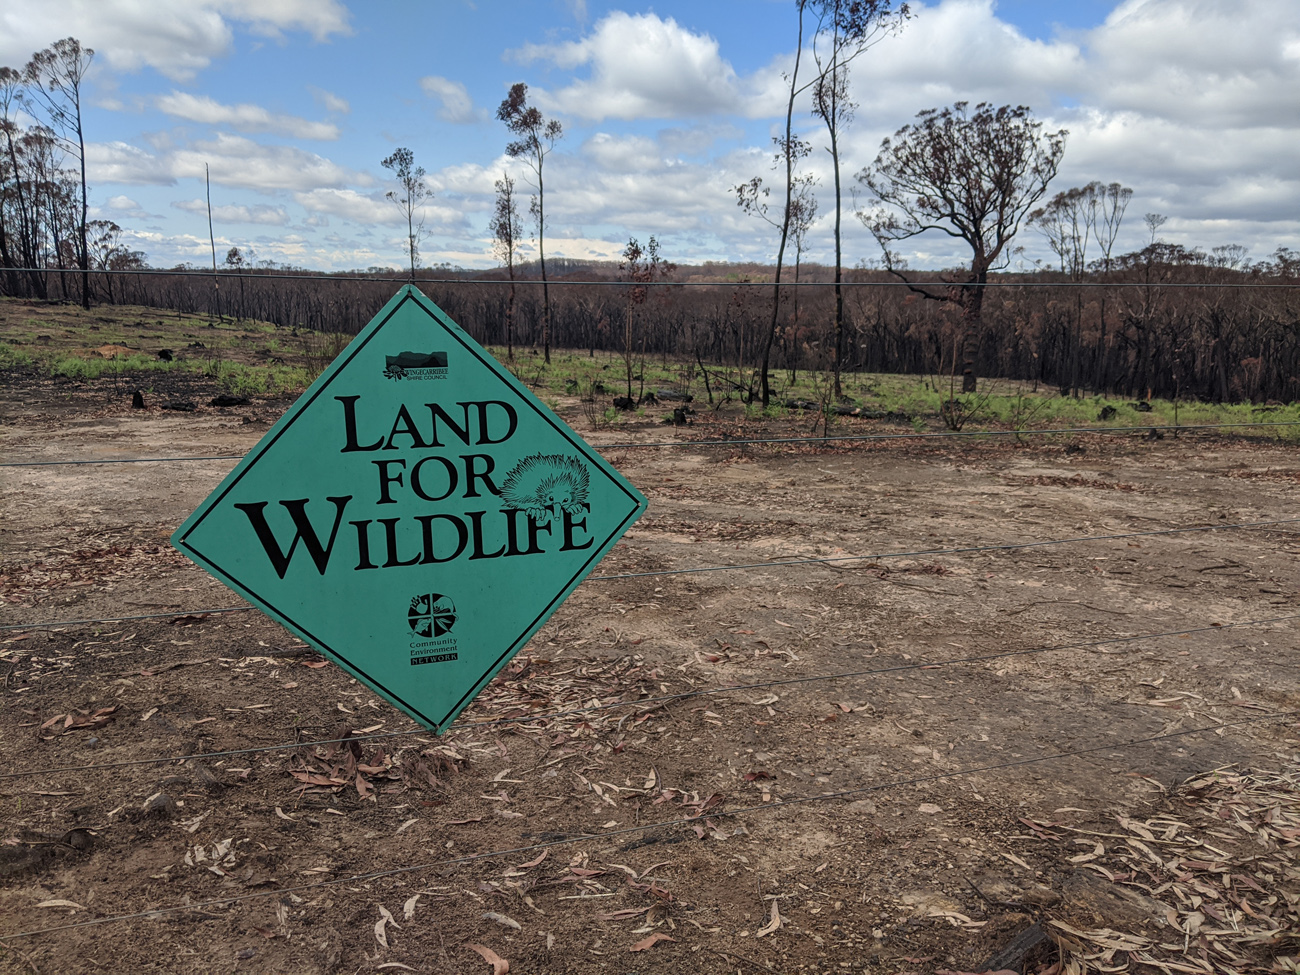 Land for Wildlife sign and burnt landscape